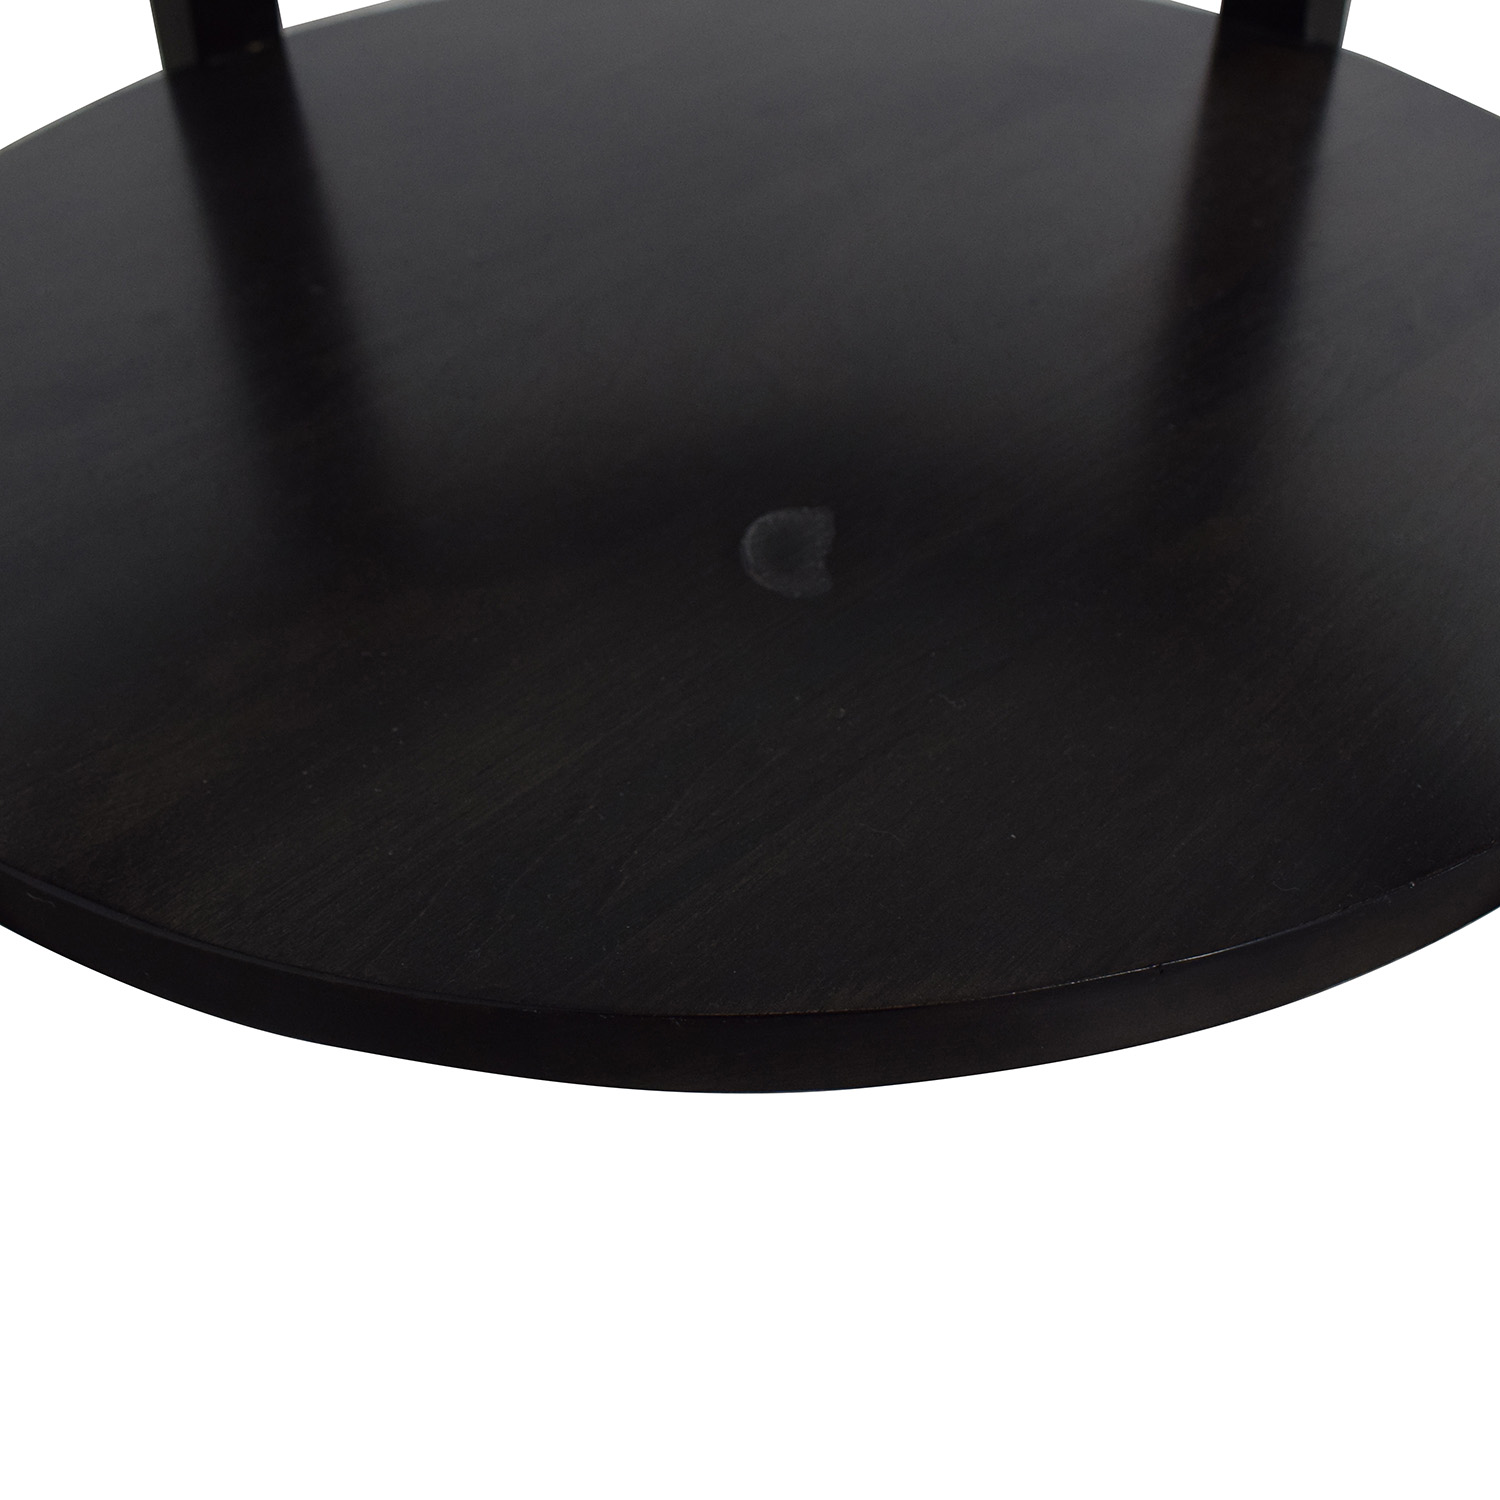 buy Crate & Barrel Glass Coffee Table Crate & Barrel Coffee Tables